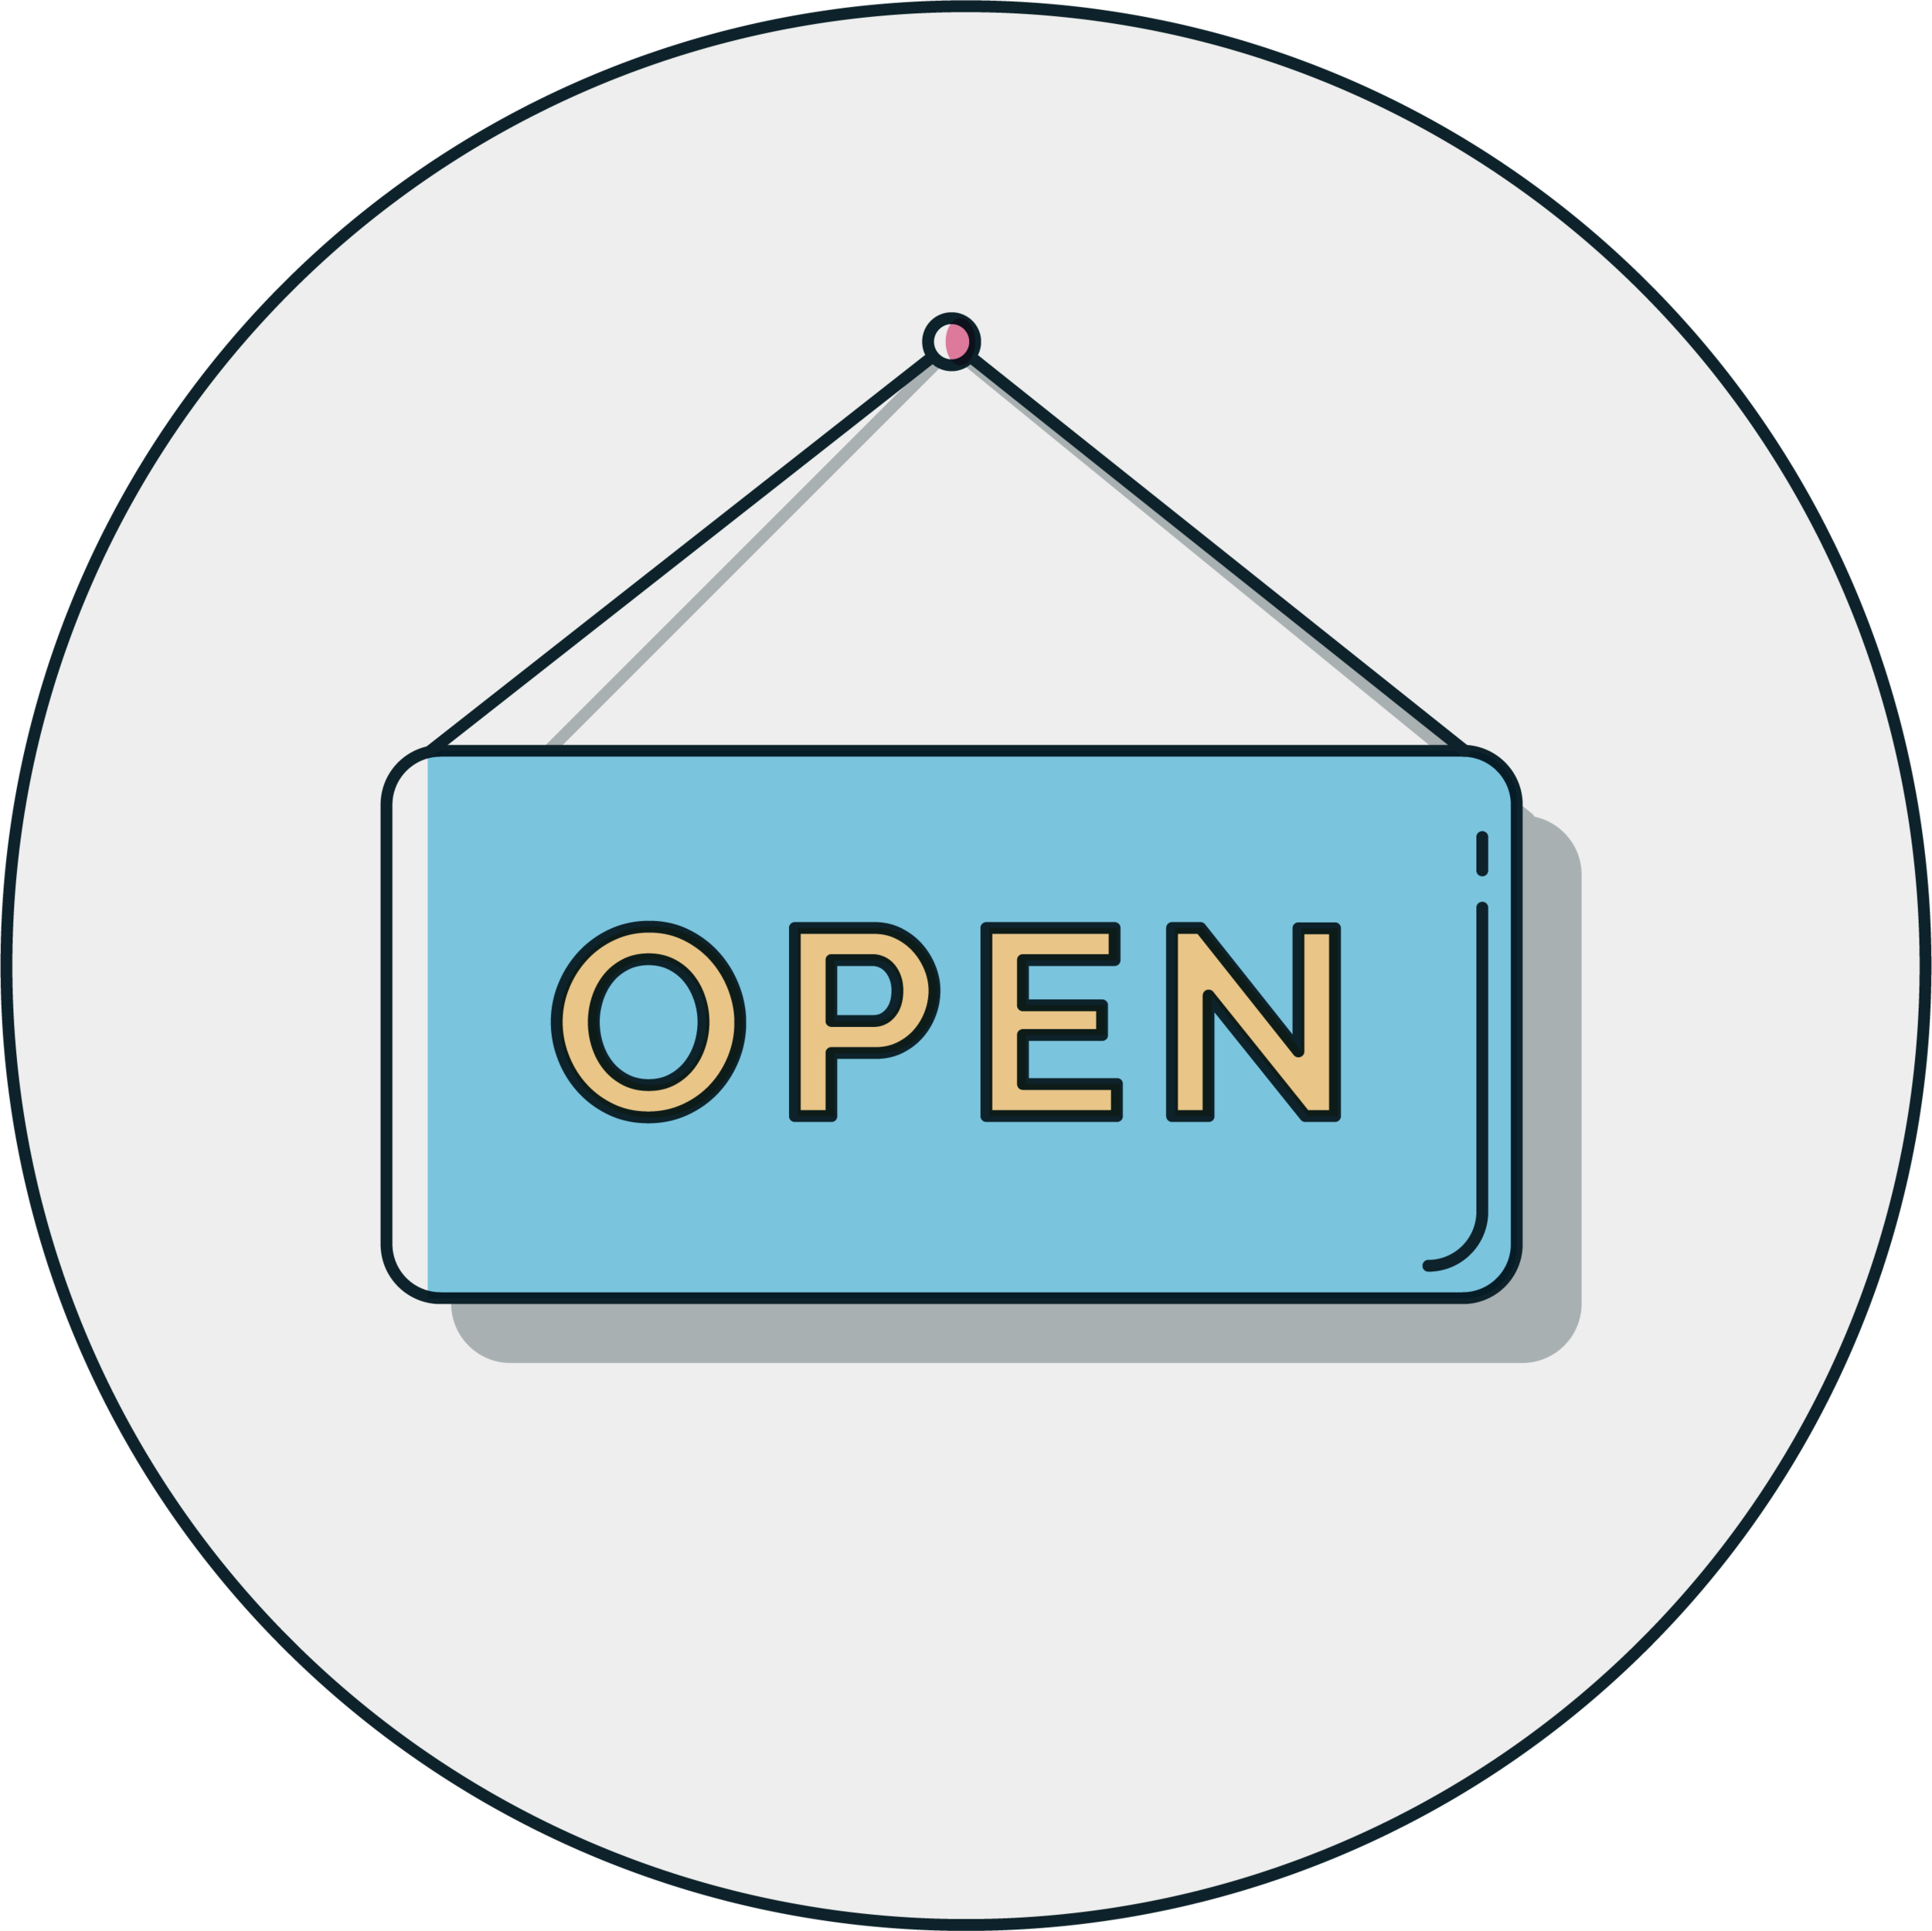 Icons_PHE_ICons_Open sign.png